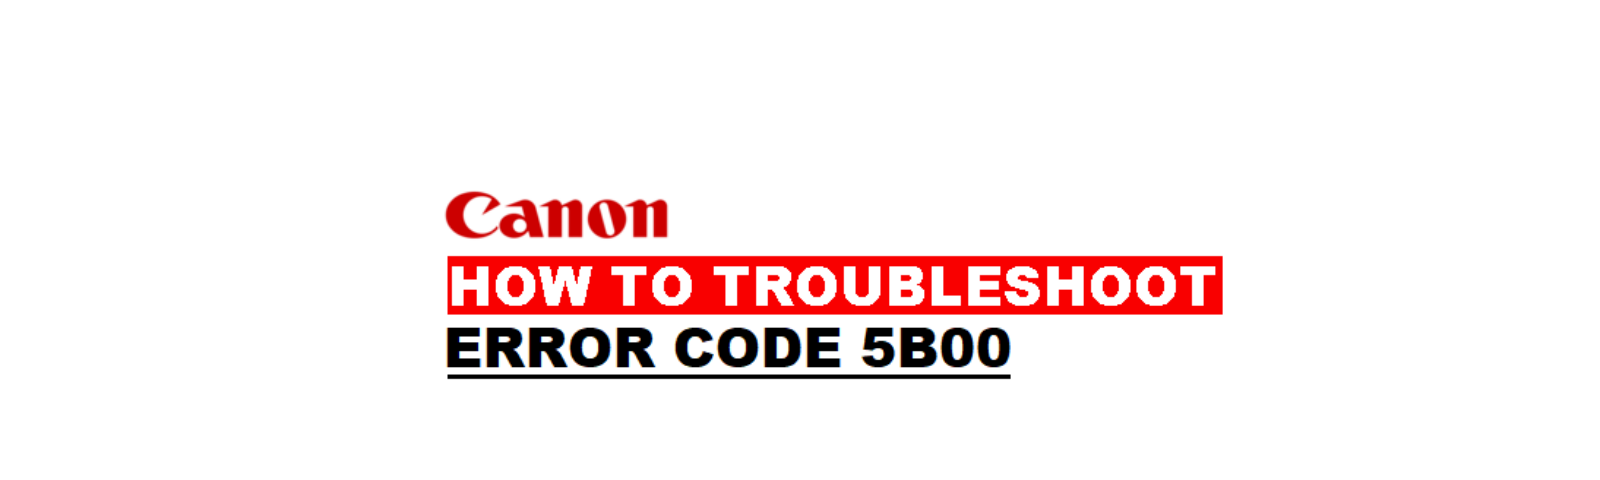 How to Troubleshoot Canon Printer Error 5B00? - Raymond White - Medium